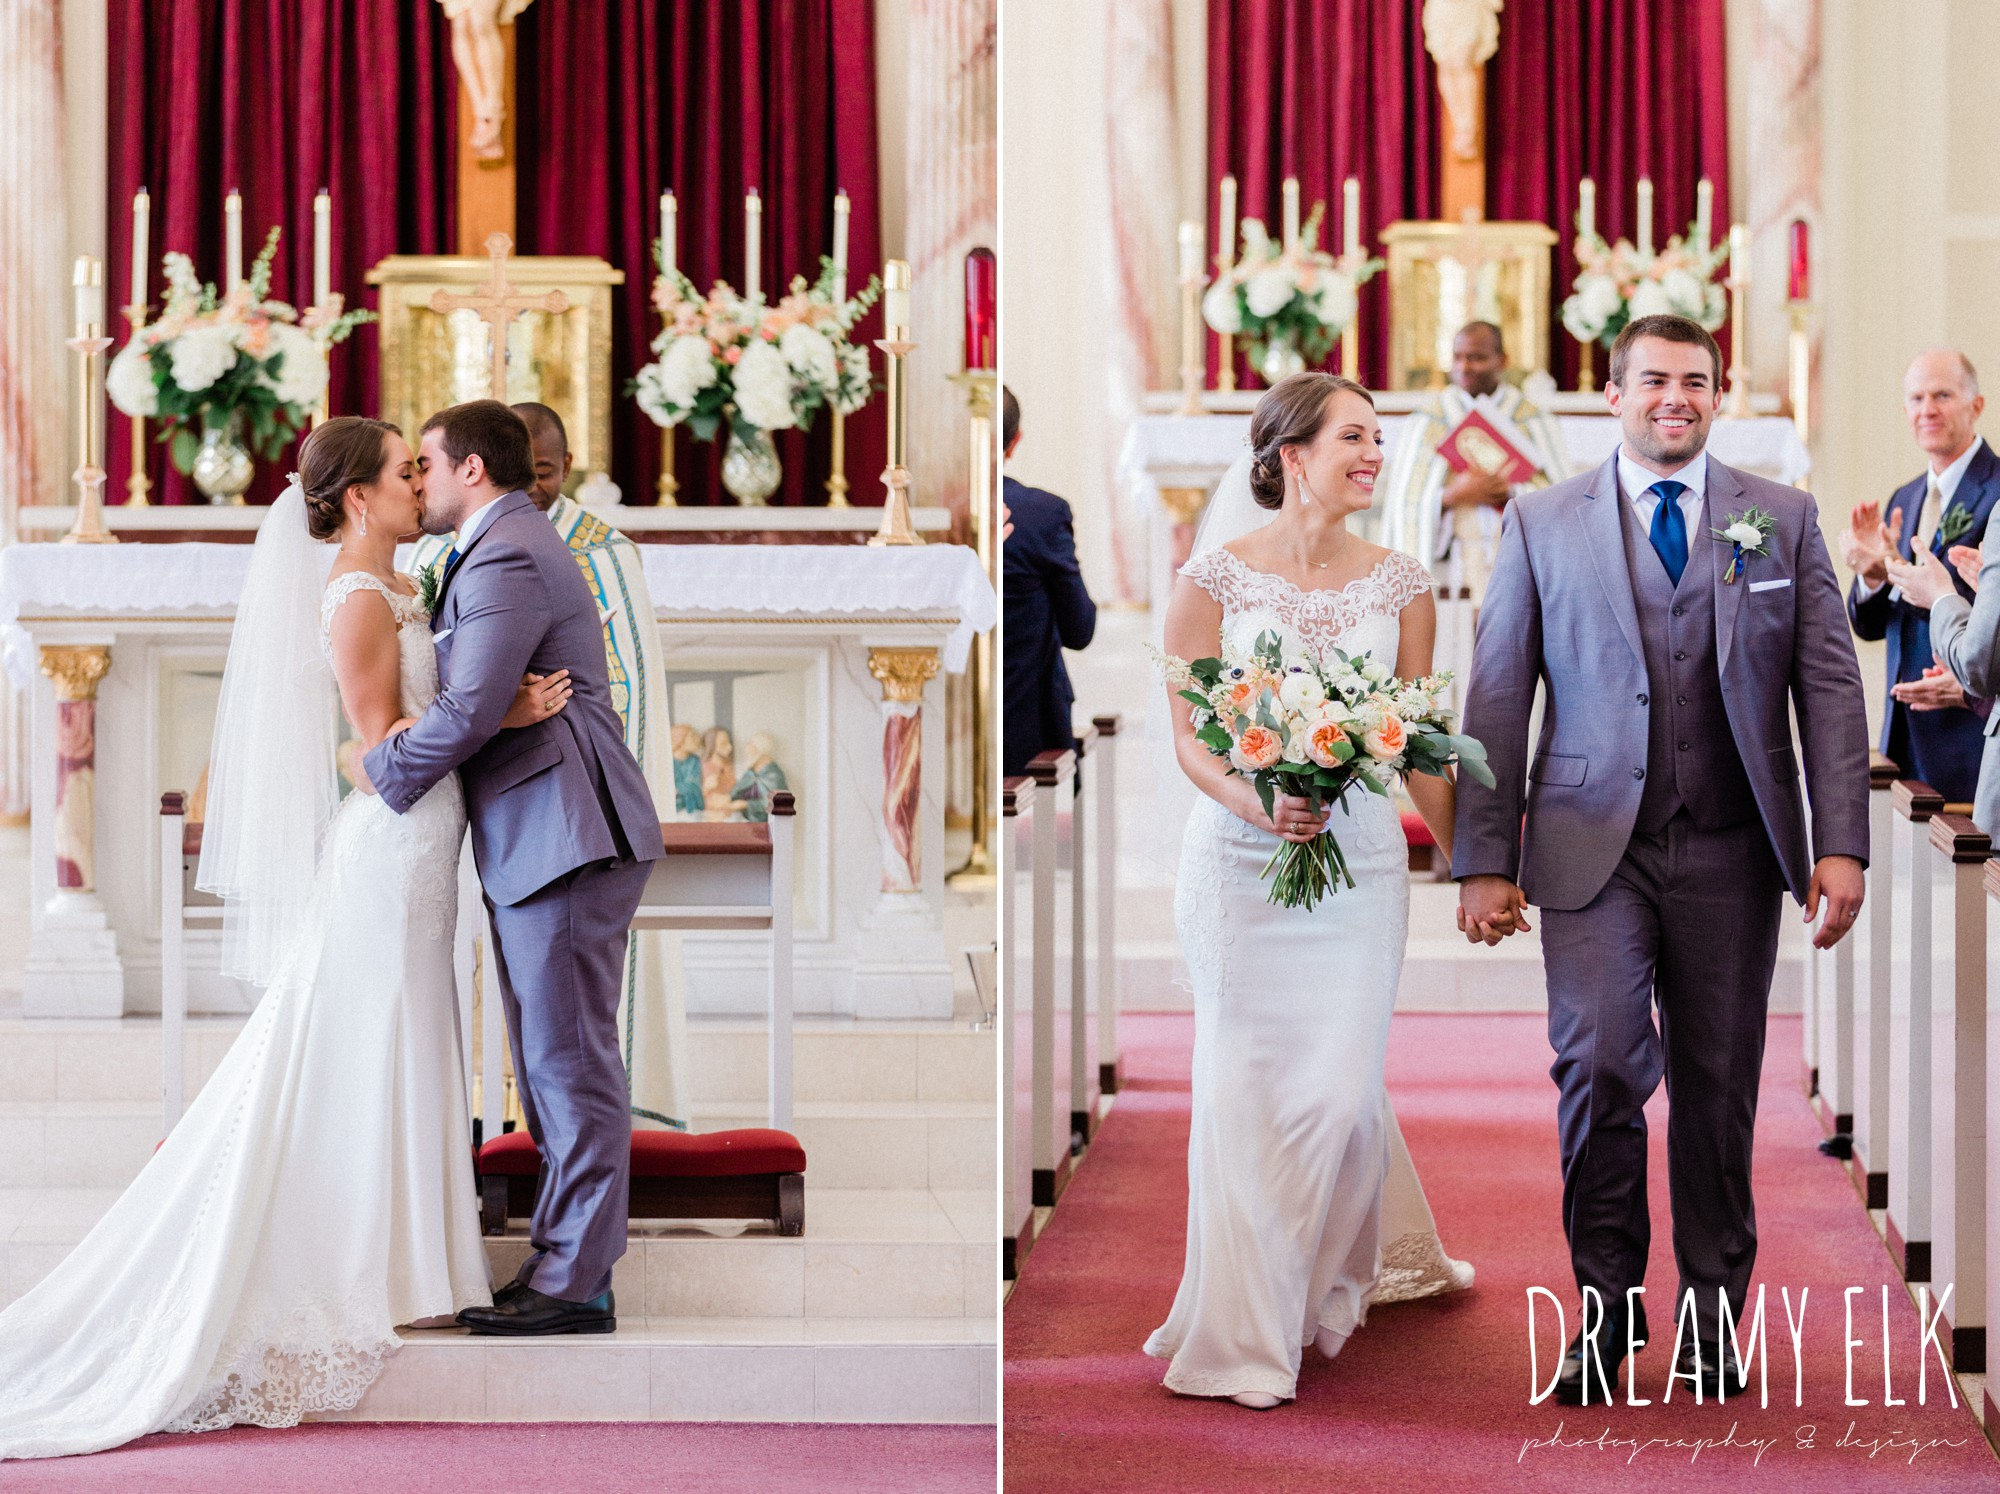 bride and groom walking down the aisle, church wedding, essense of australia column dress, unforgettable floral, spring wedding photo college station texas, dreamy elk photography and design